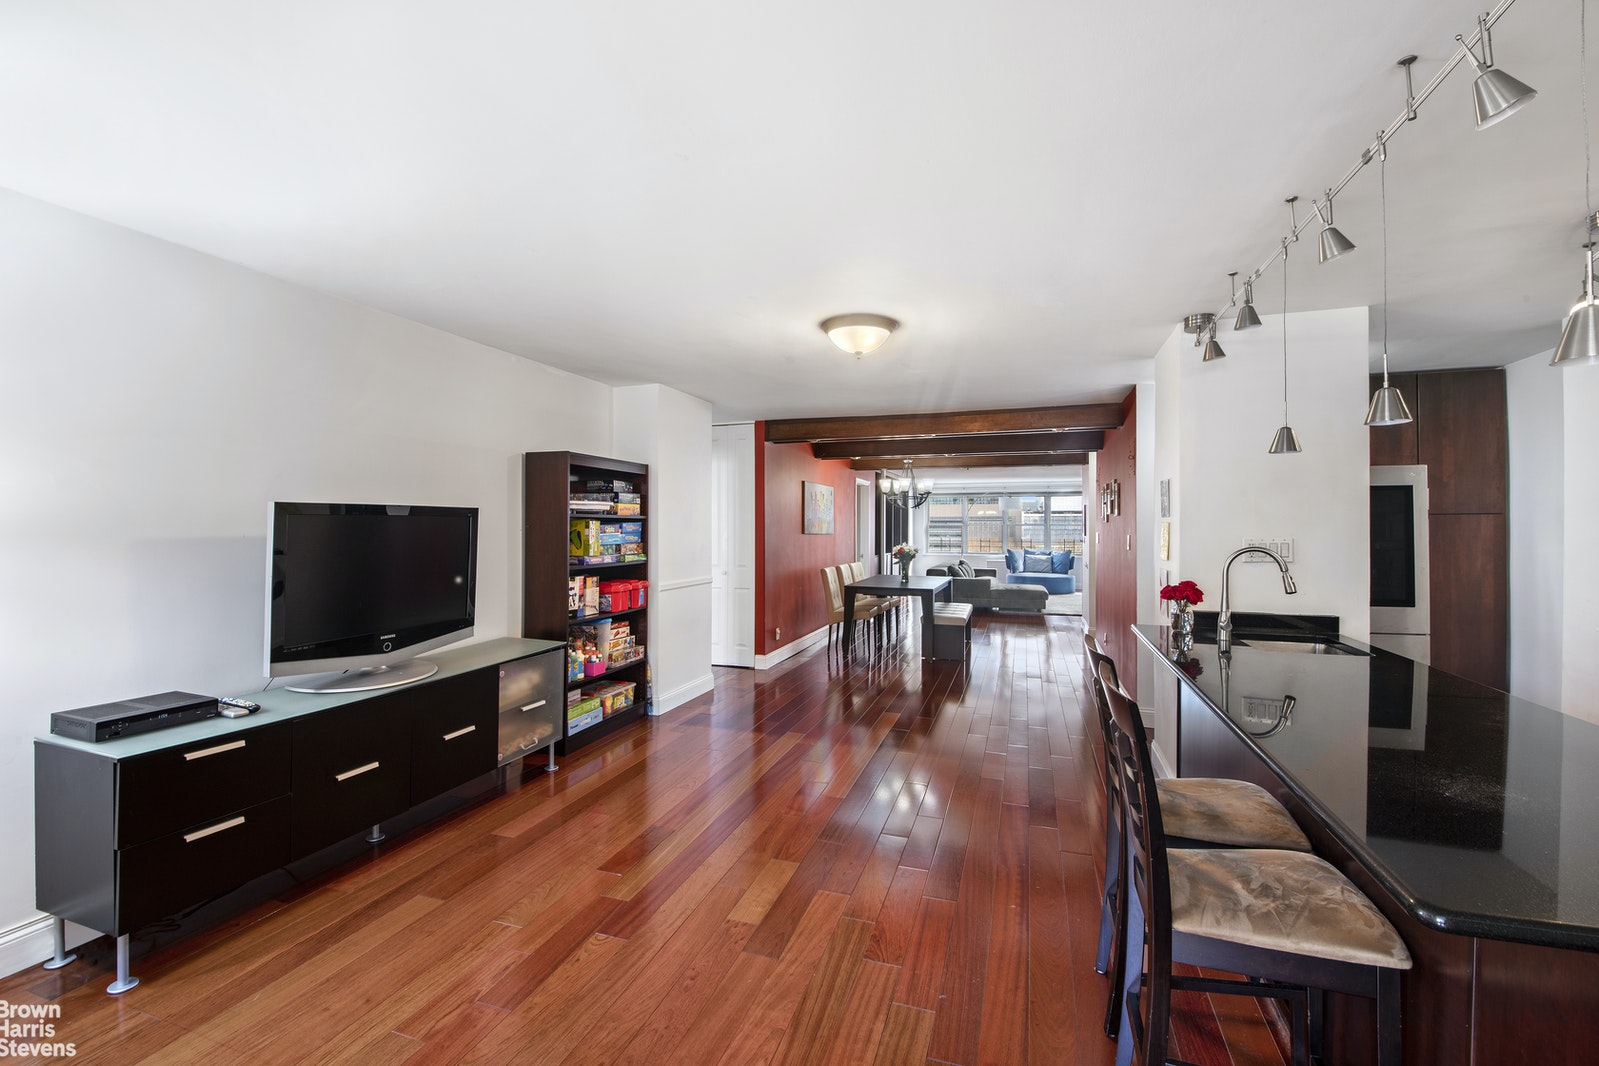 251 East 32nd Street 9bc, Murray Hill Kips Bay, NYC, 10016, $1,599,000, Property For Sale, Halstead Real Estate, Photo 11